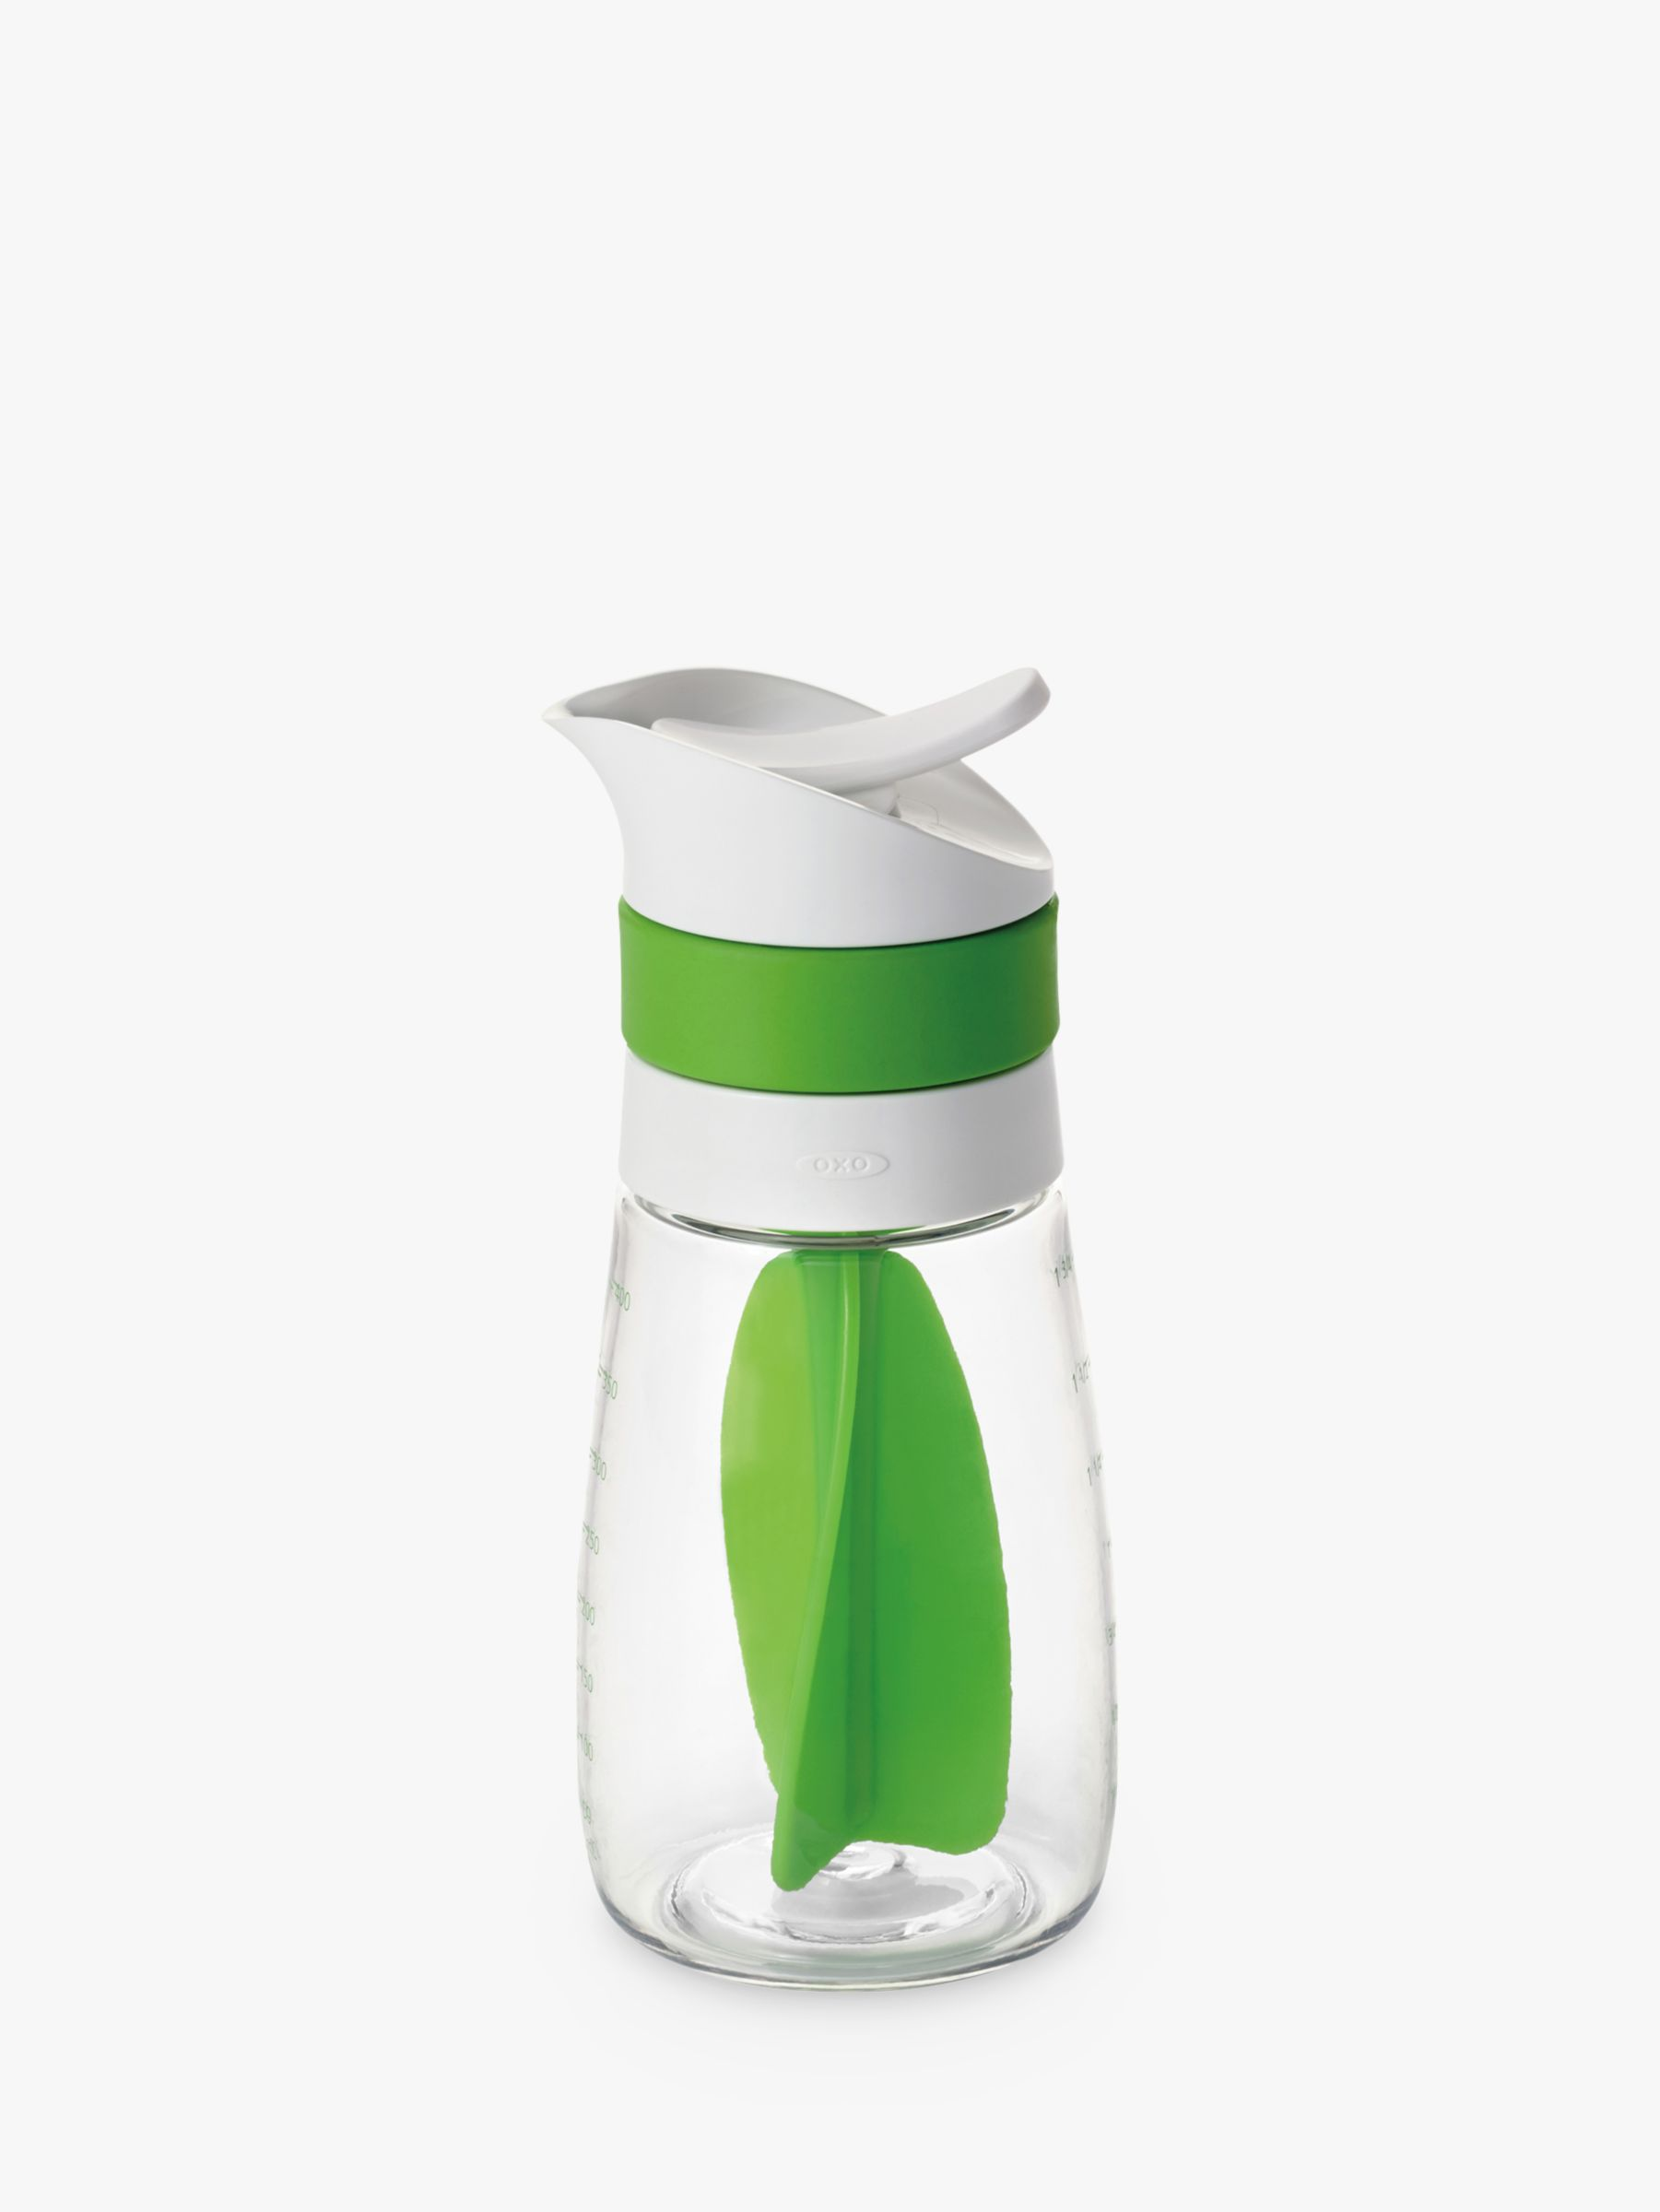 Oxo OXO Good Grips Twist and Pour Salad Dressing Mixer